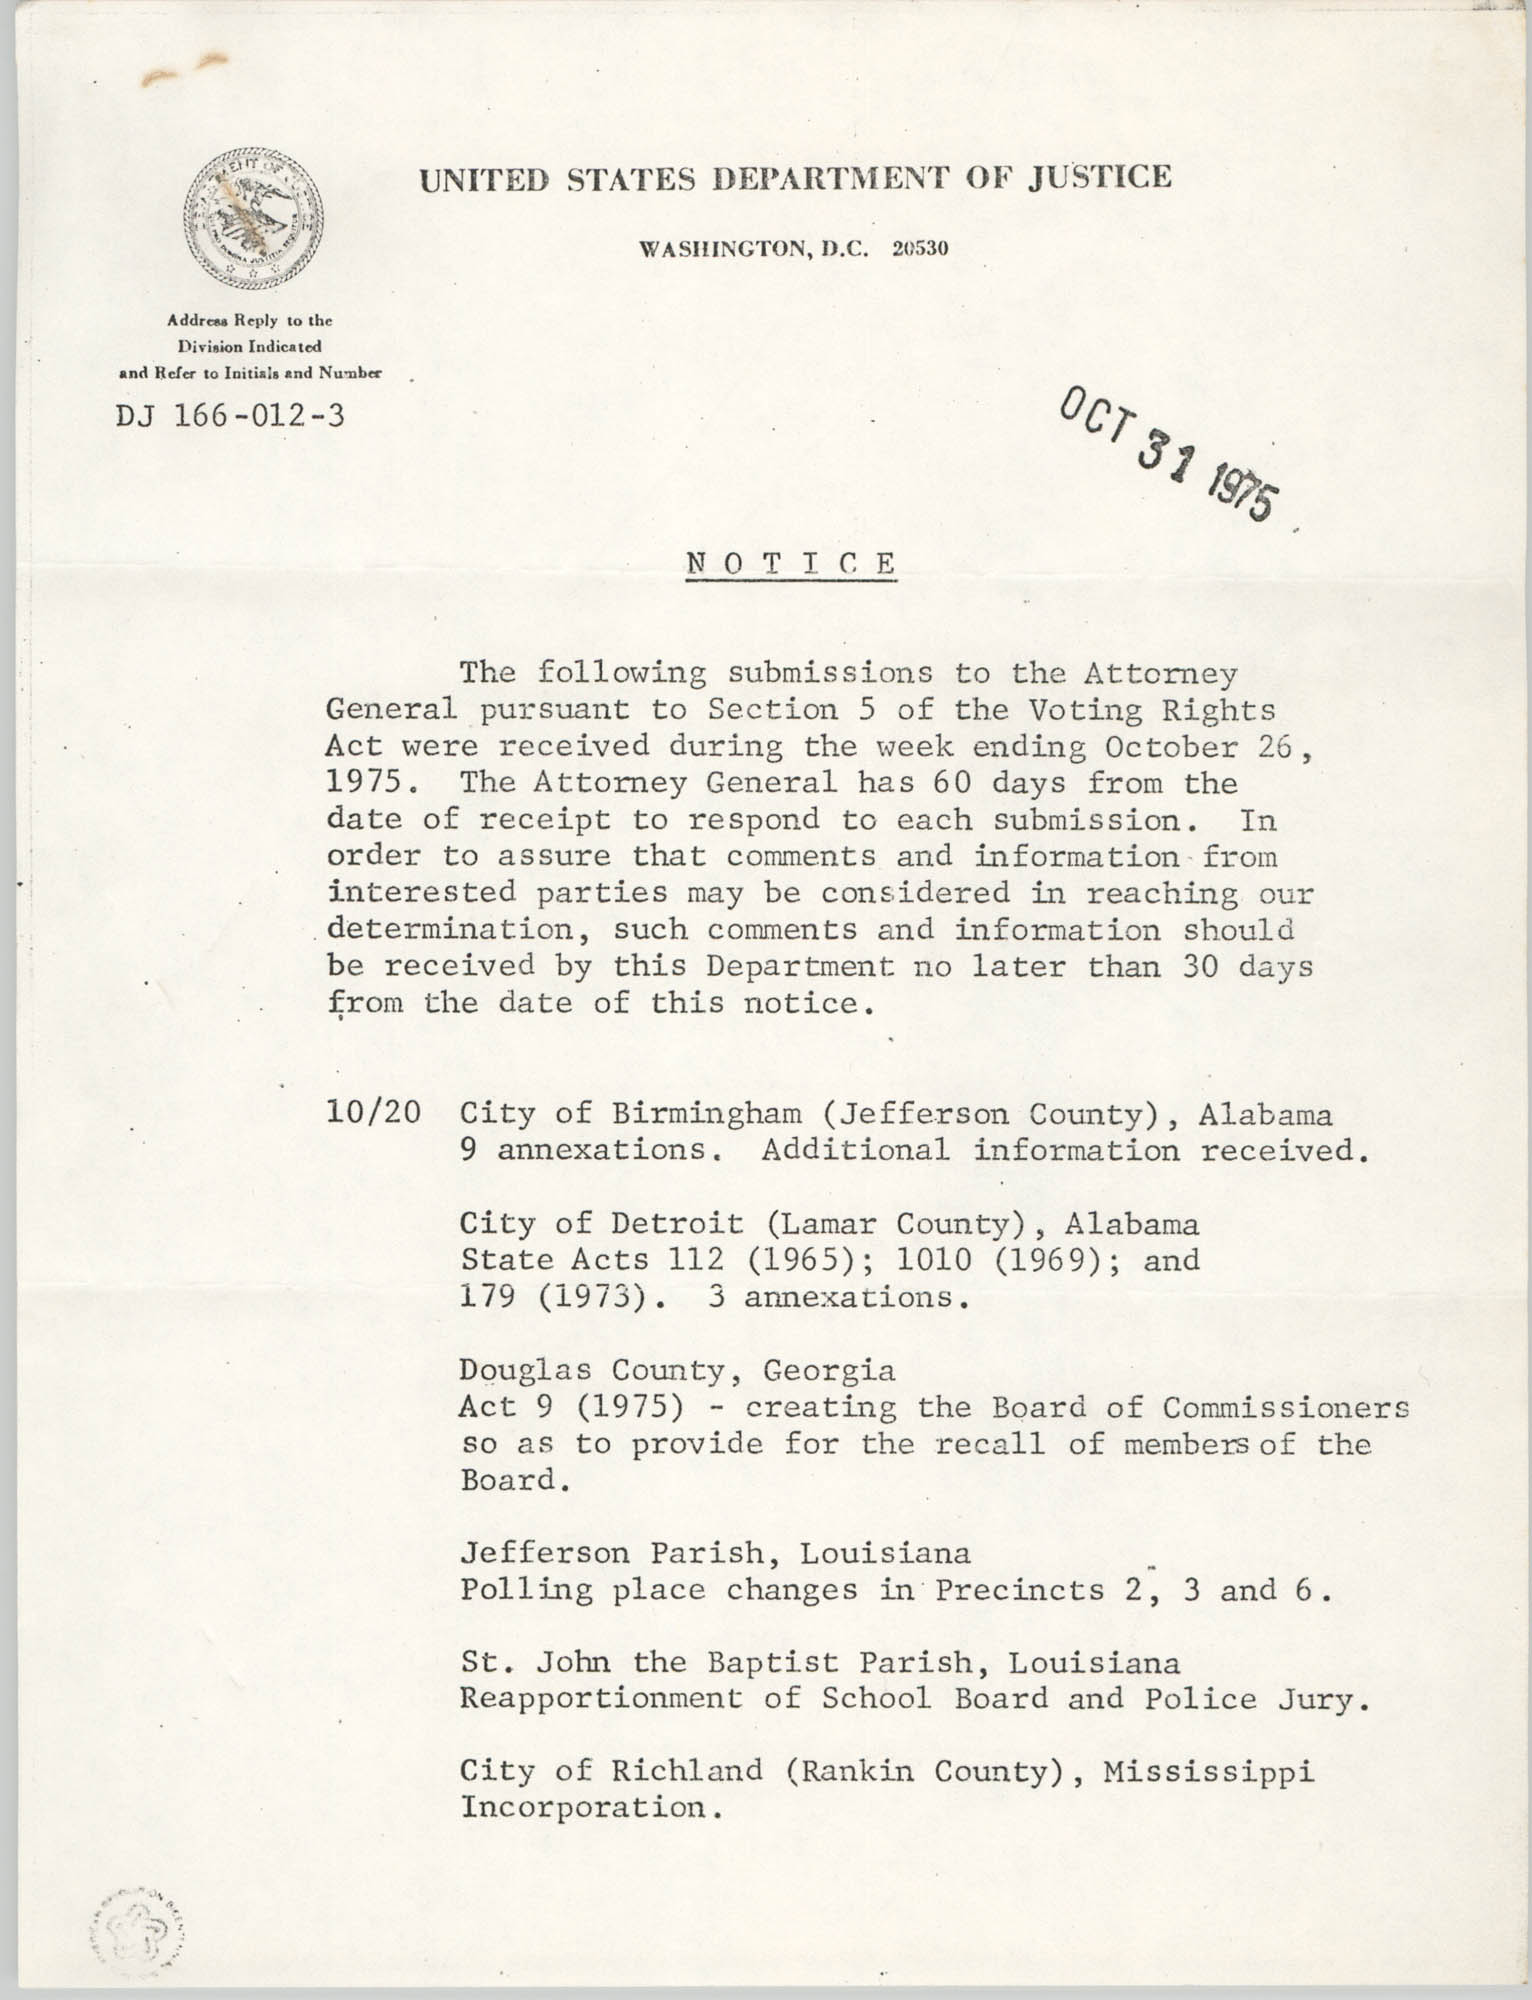 United States Department of Justice Notice, October 31, 1975